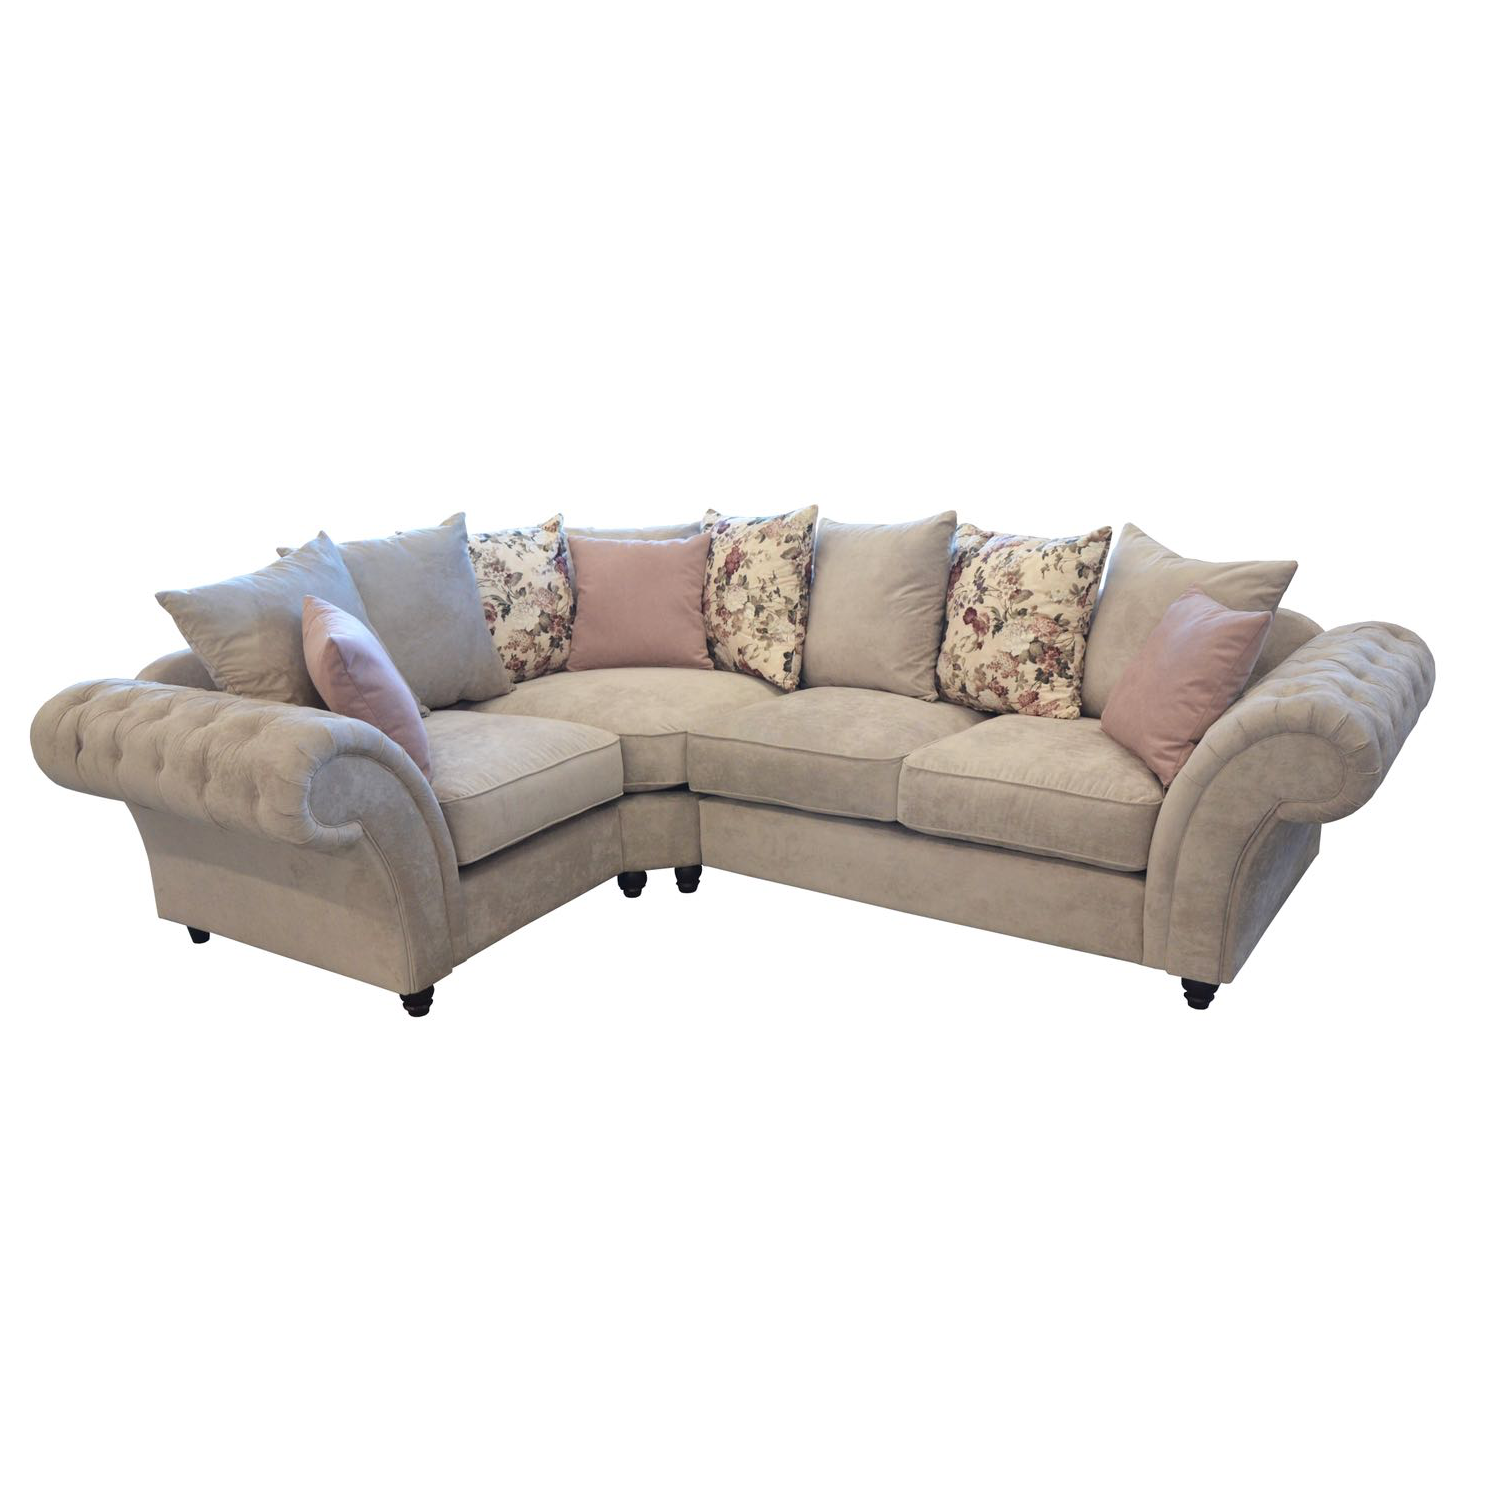 Windsor Chesterfield Fabric Left Hand Corner Sofa In Stone Just